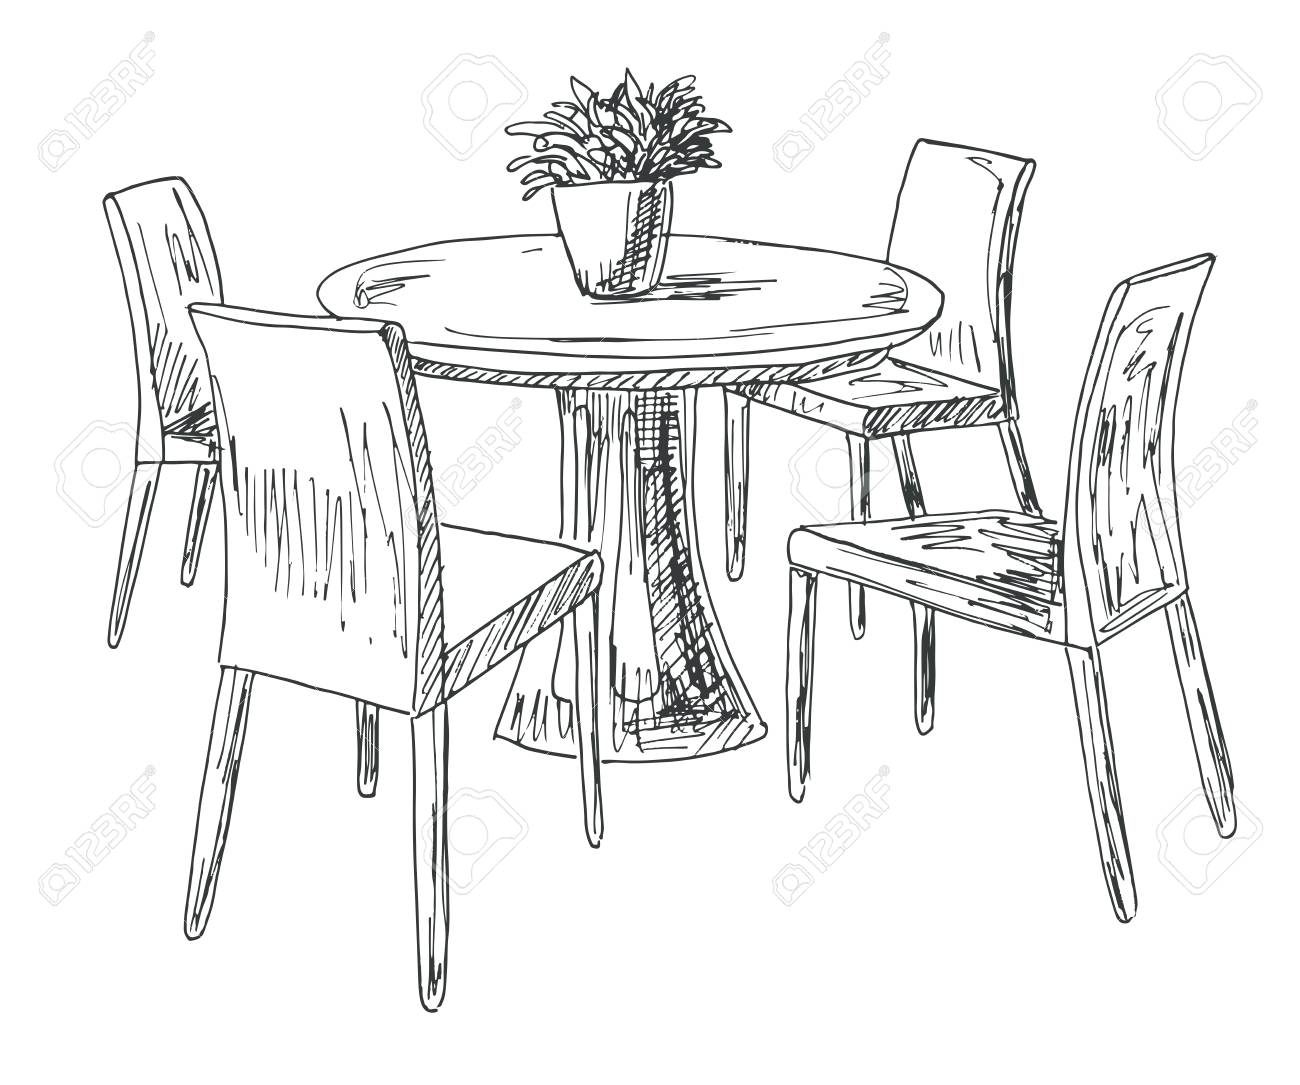 Part Of The Dining Room Round Table And Chairs On The Table Royalty Free Cliparts Vectors And Stock Illustration Image 78357779